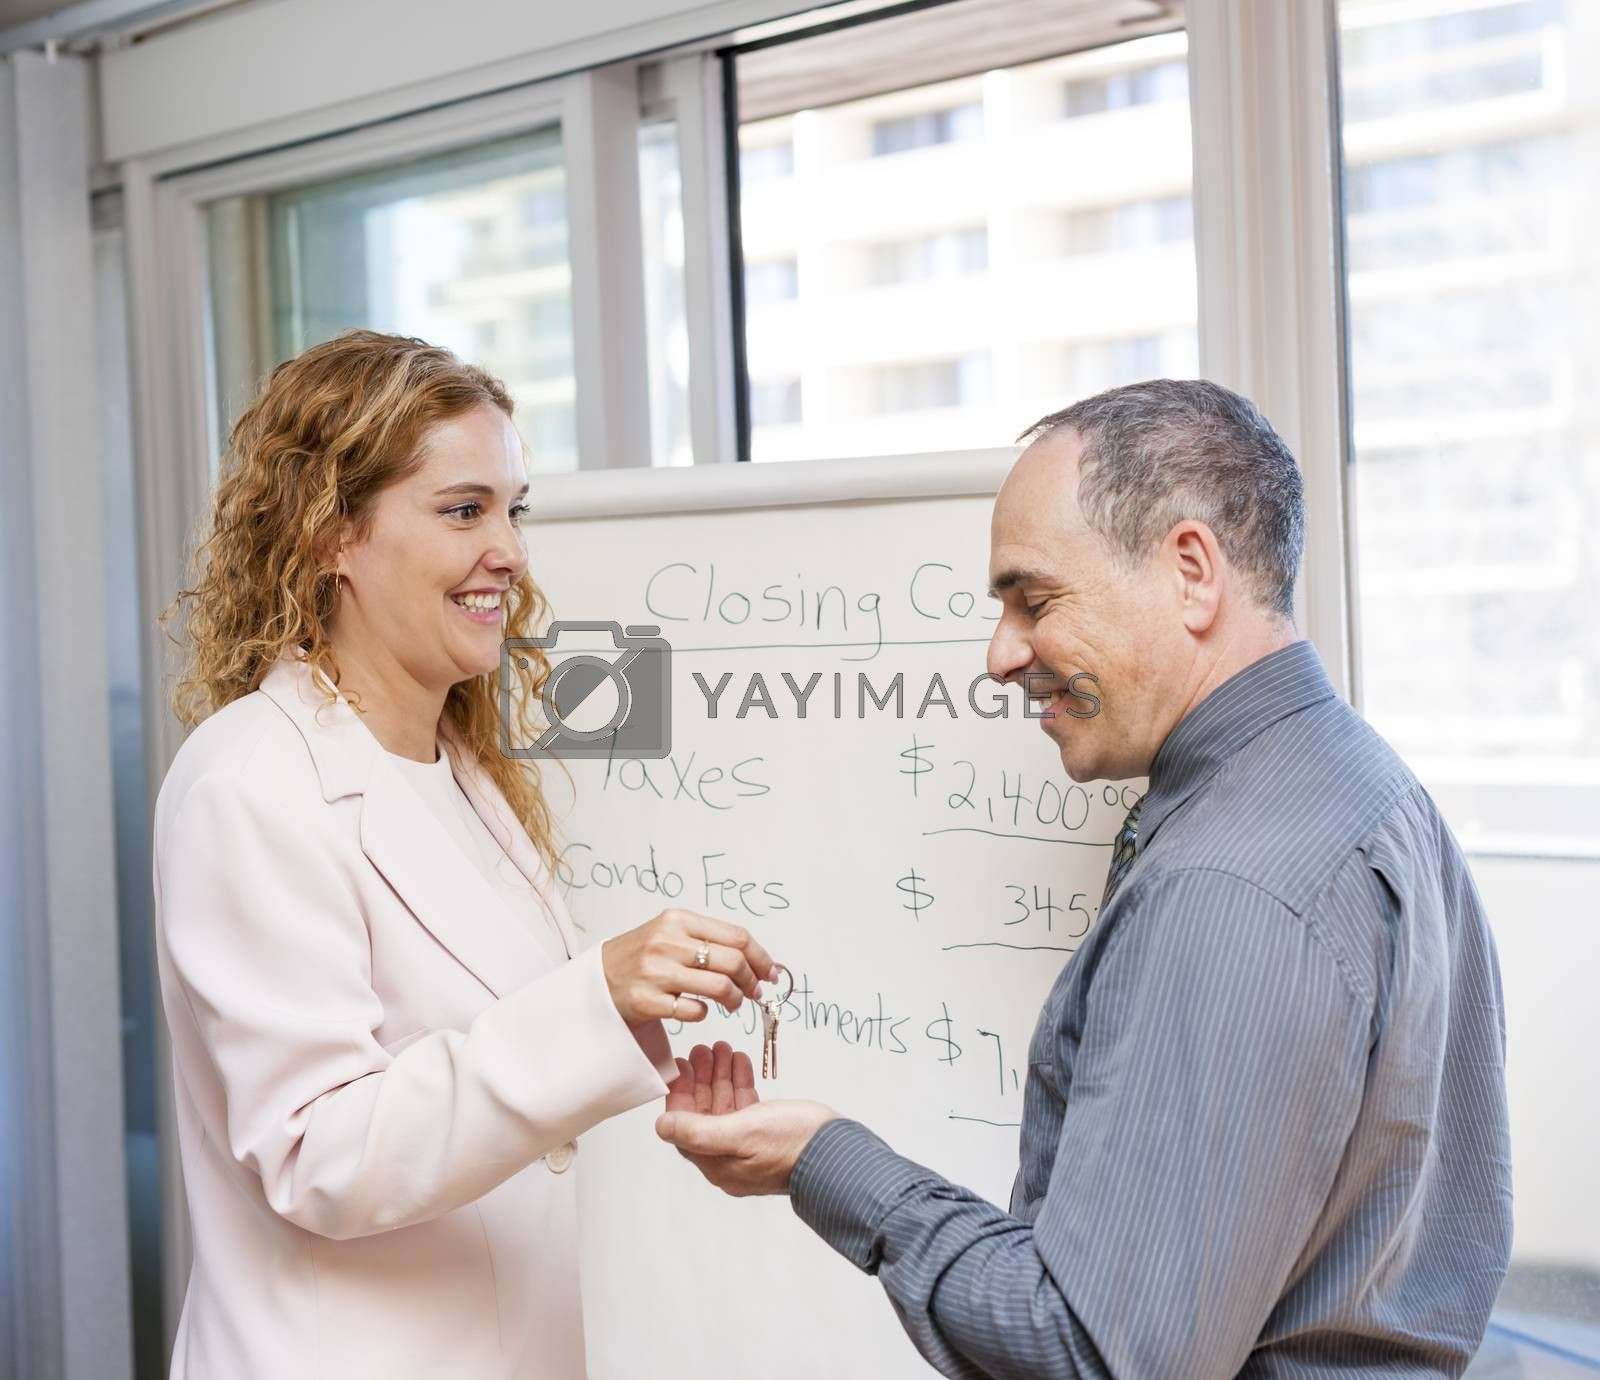 Female real estate agent giving keys to new home buyer